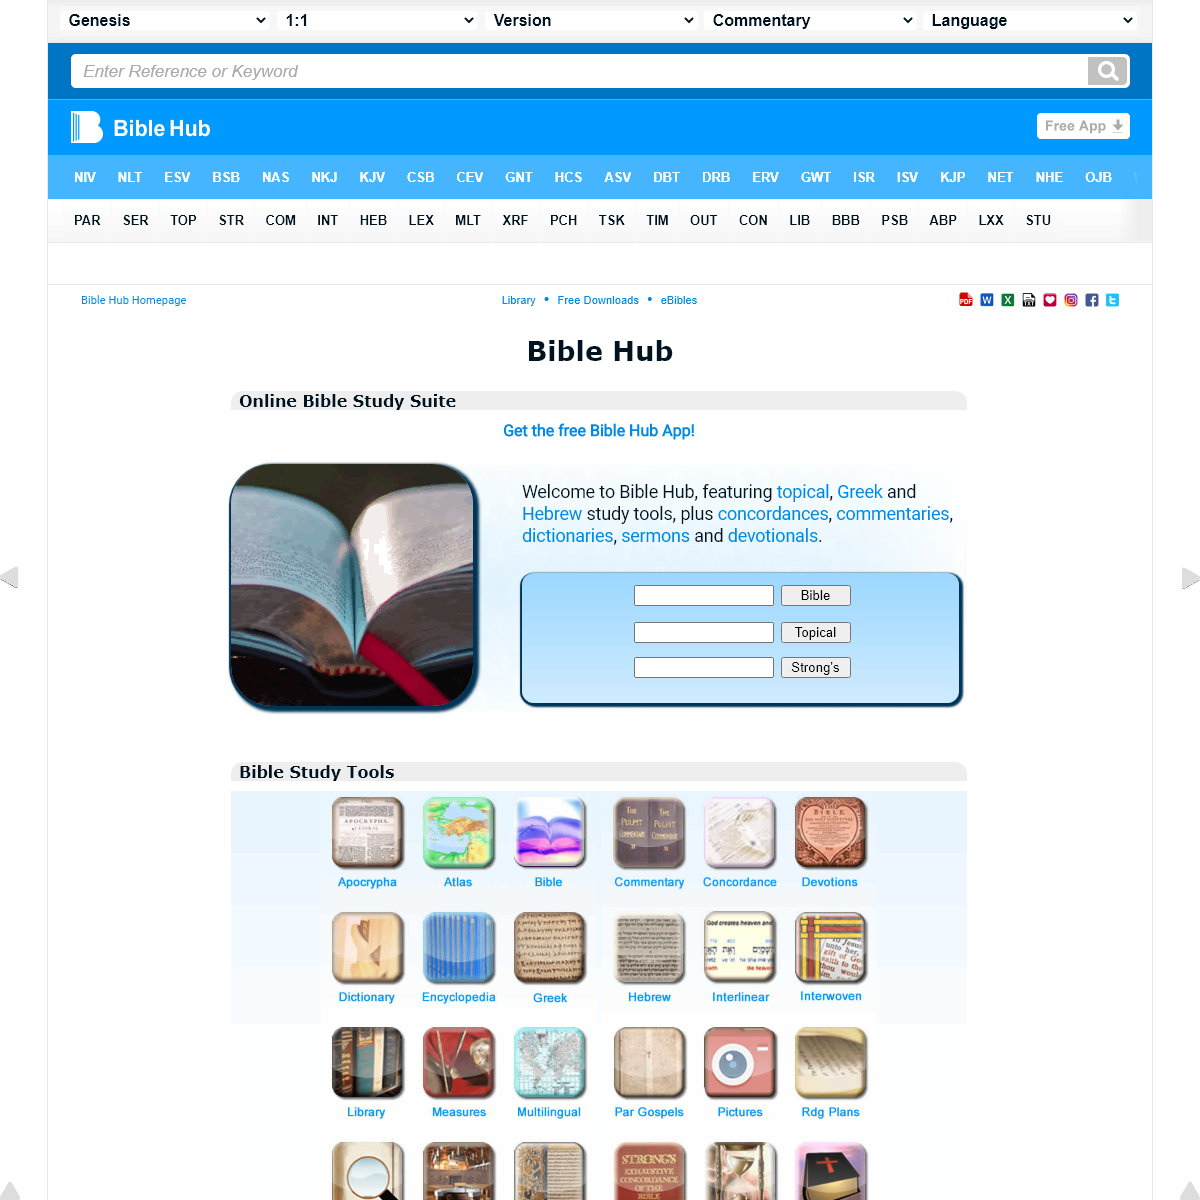 Bible Hub- Search, Read, Study the Bible in Many Languages